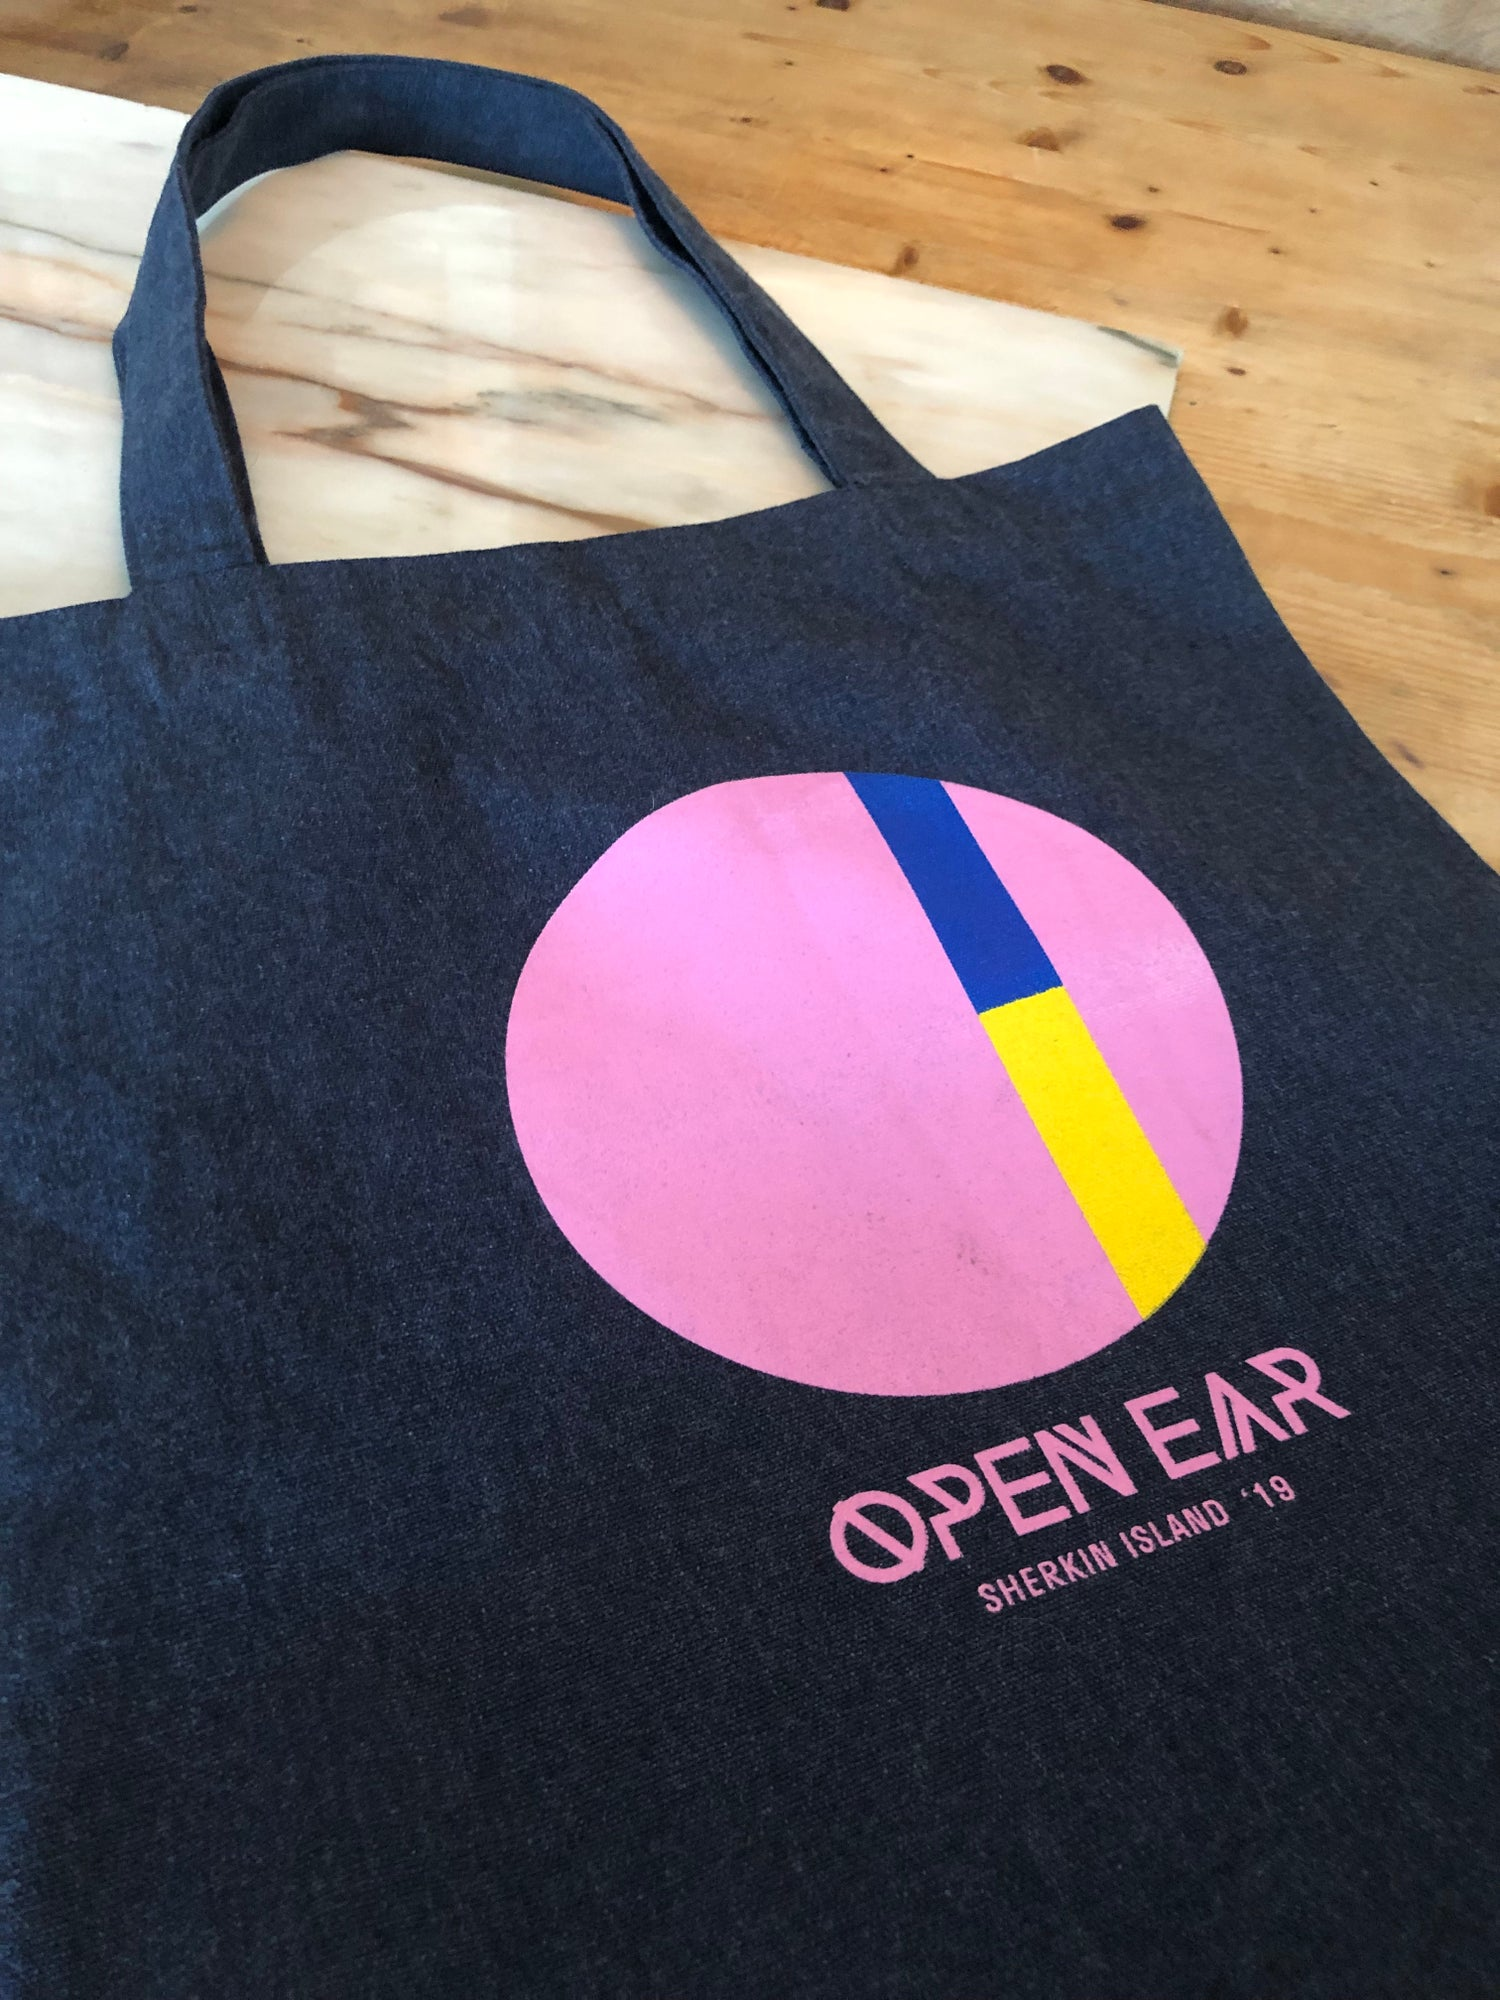 Image of Organic Open Ear Tote Bag